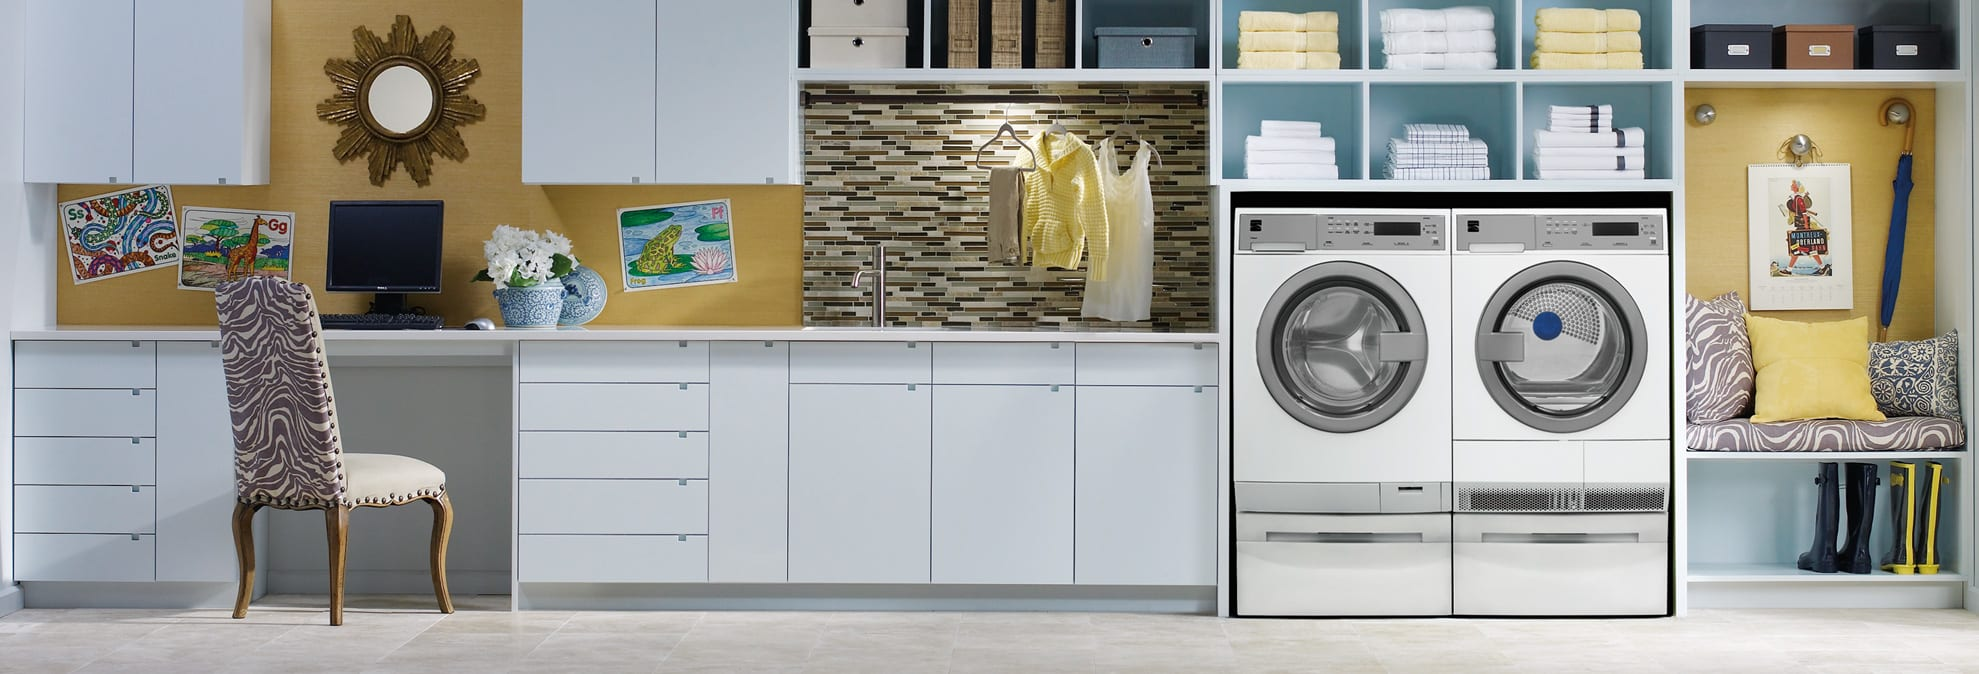 Compact Washers And Dryers Solve Tight Fit Needs Consumer